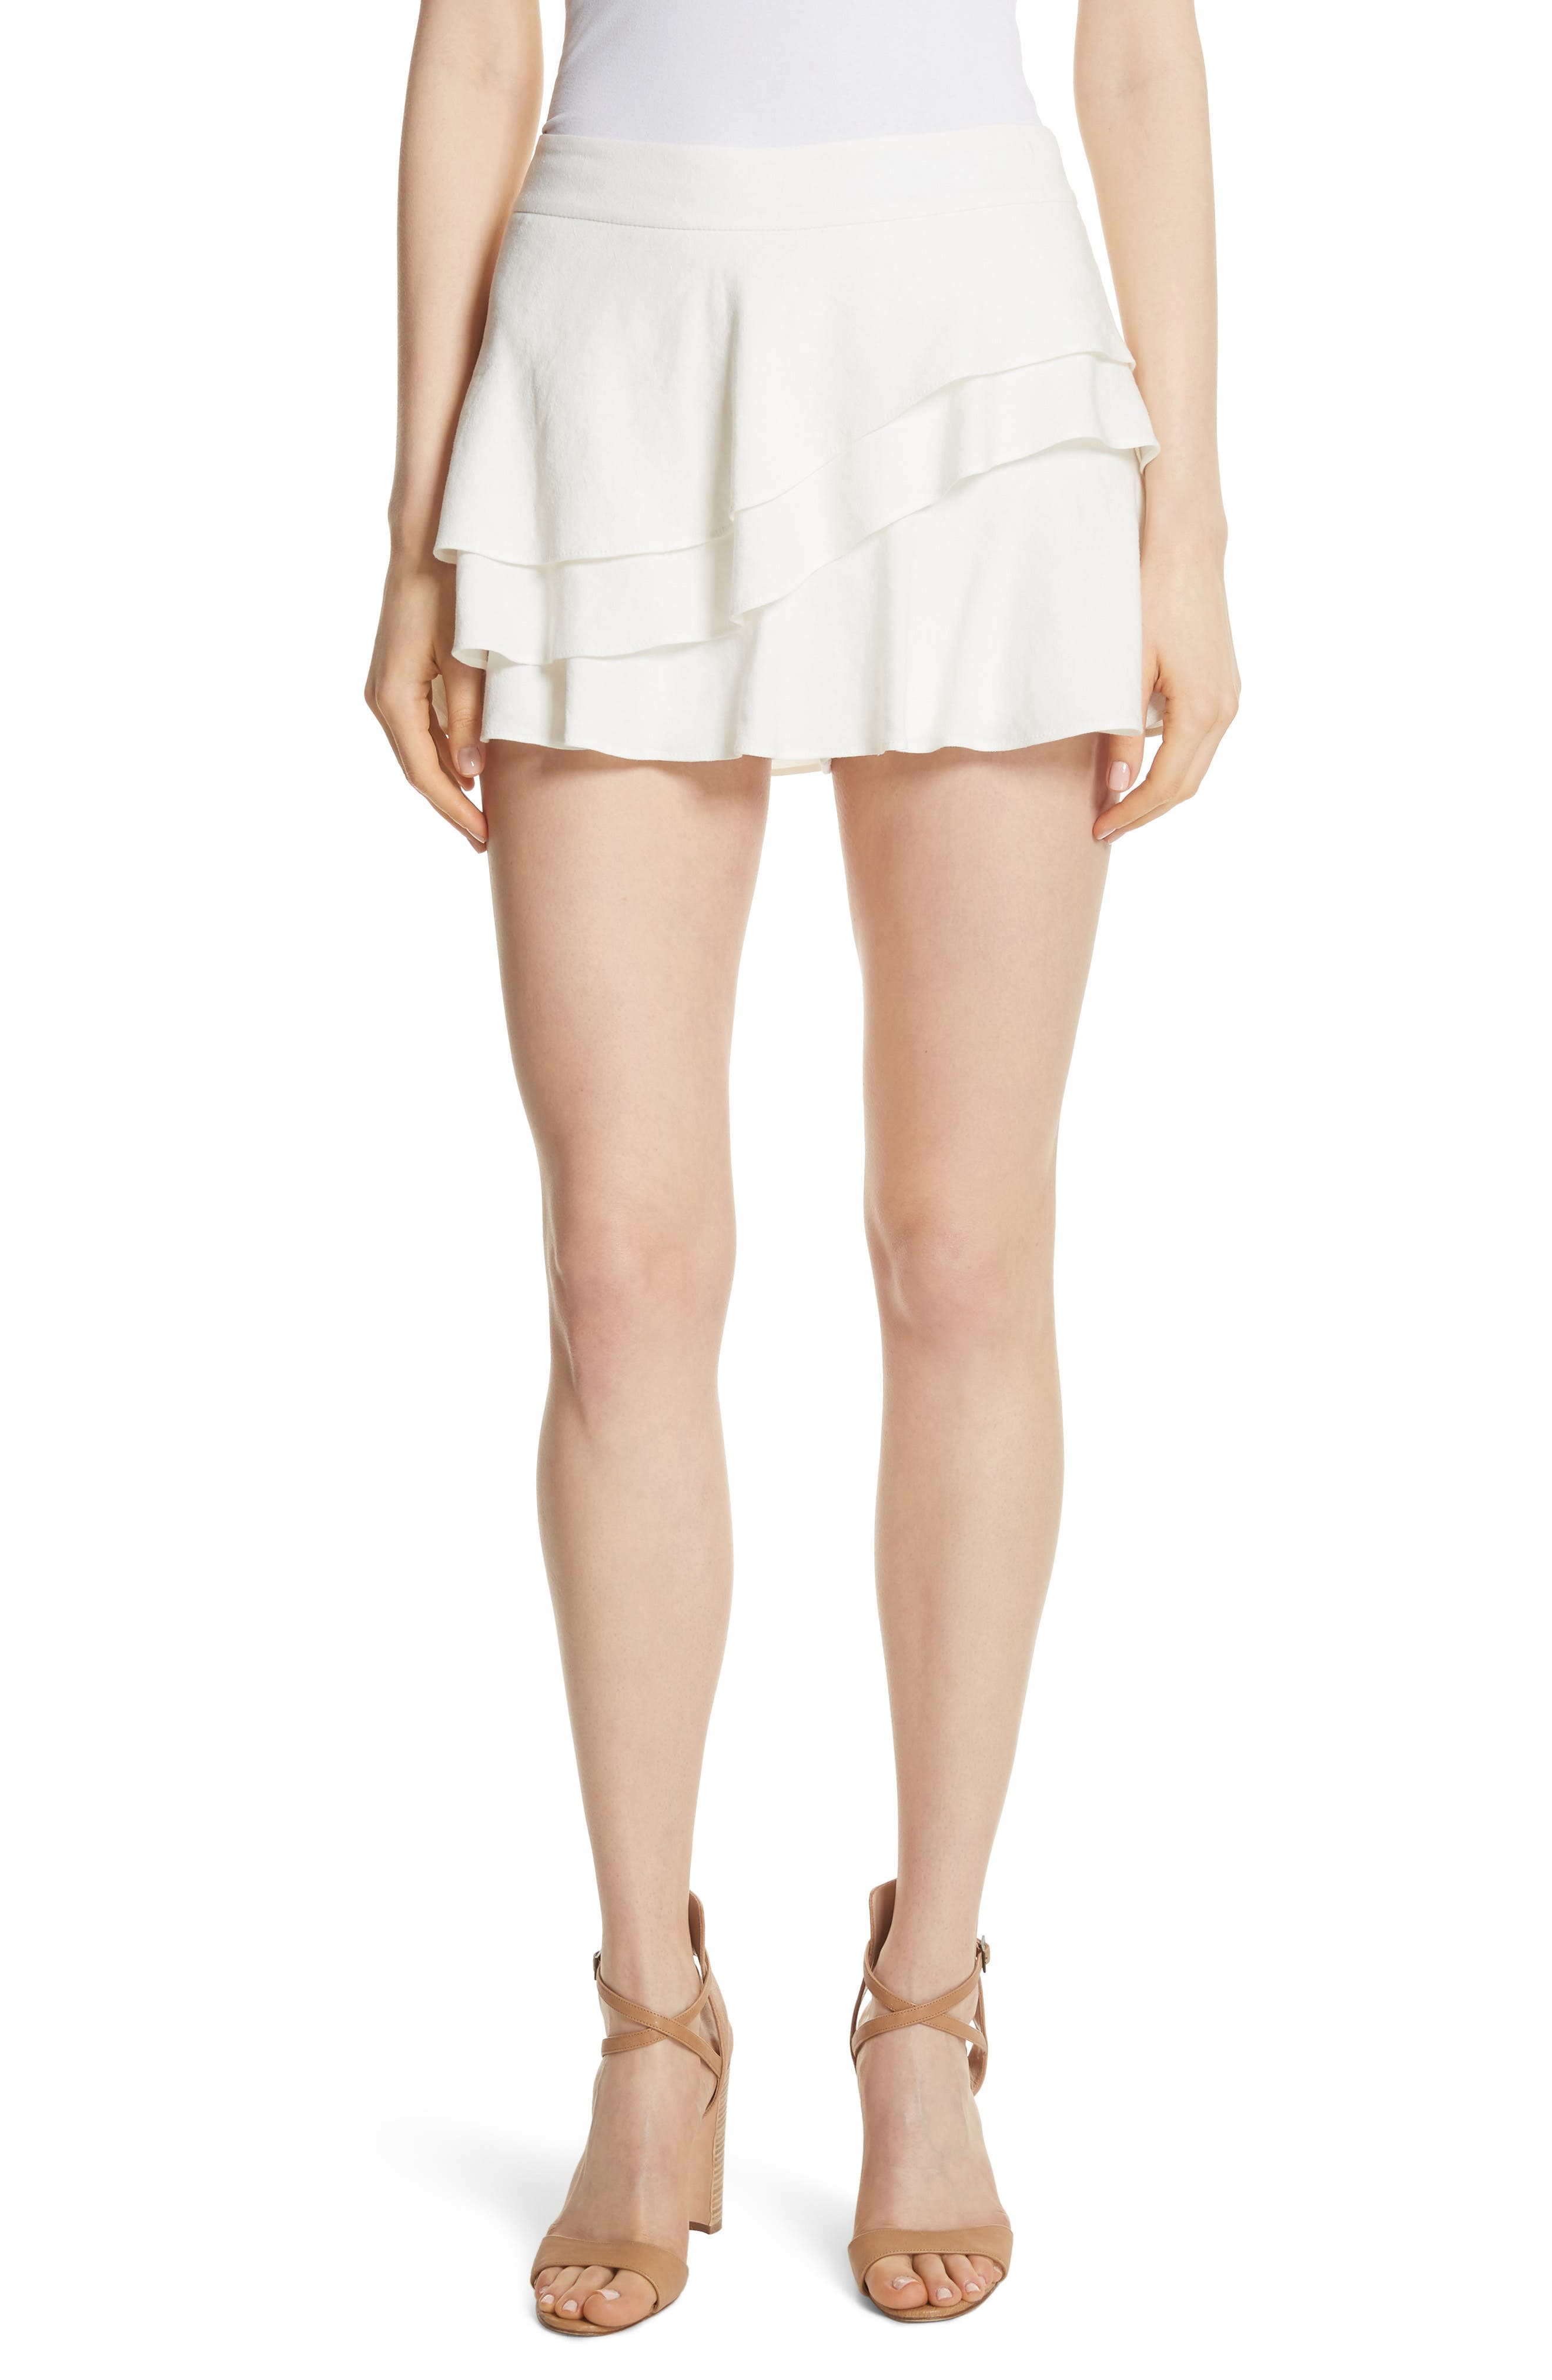 ALICE + OLIVIA,                             Mariella Tiered Ruffle Skort,                             Main thumbnail 1, color,                             127